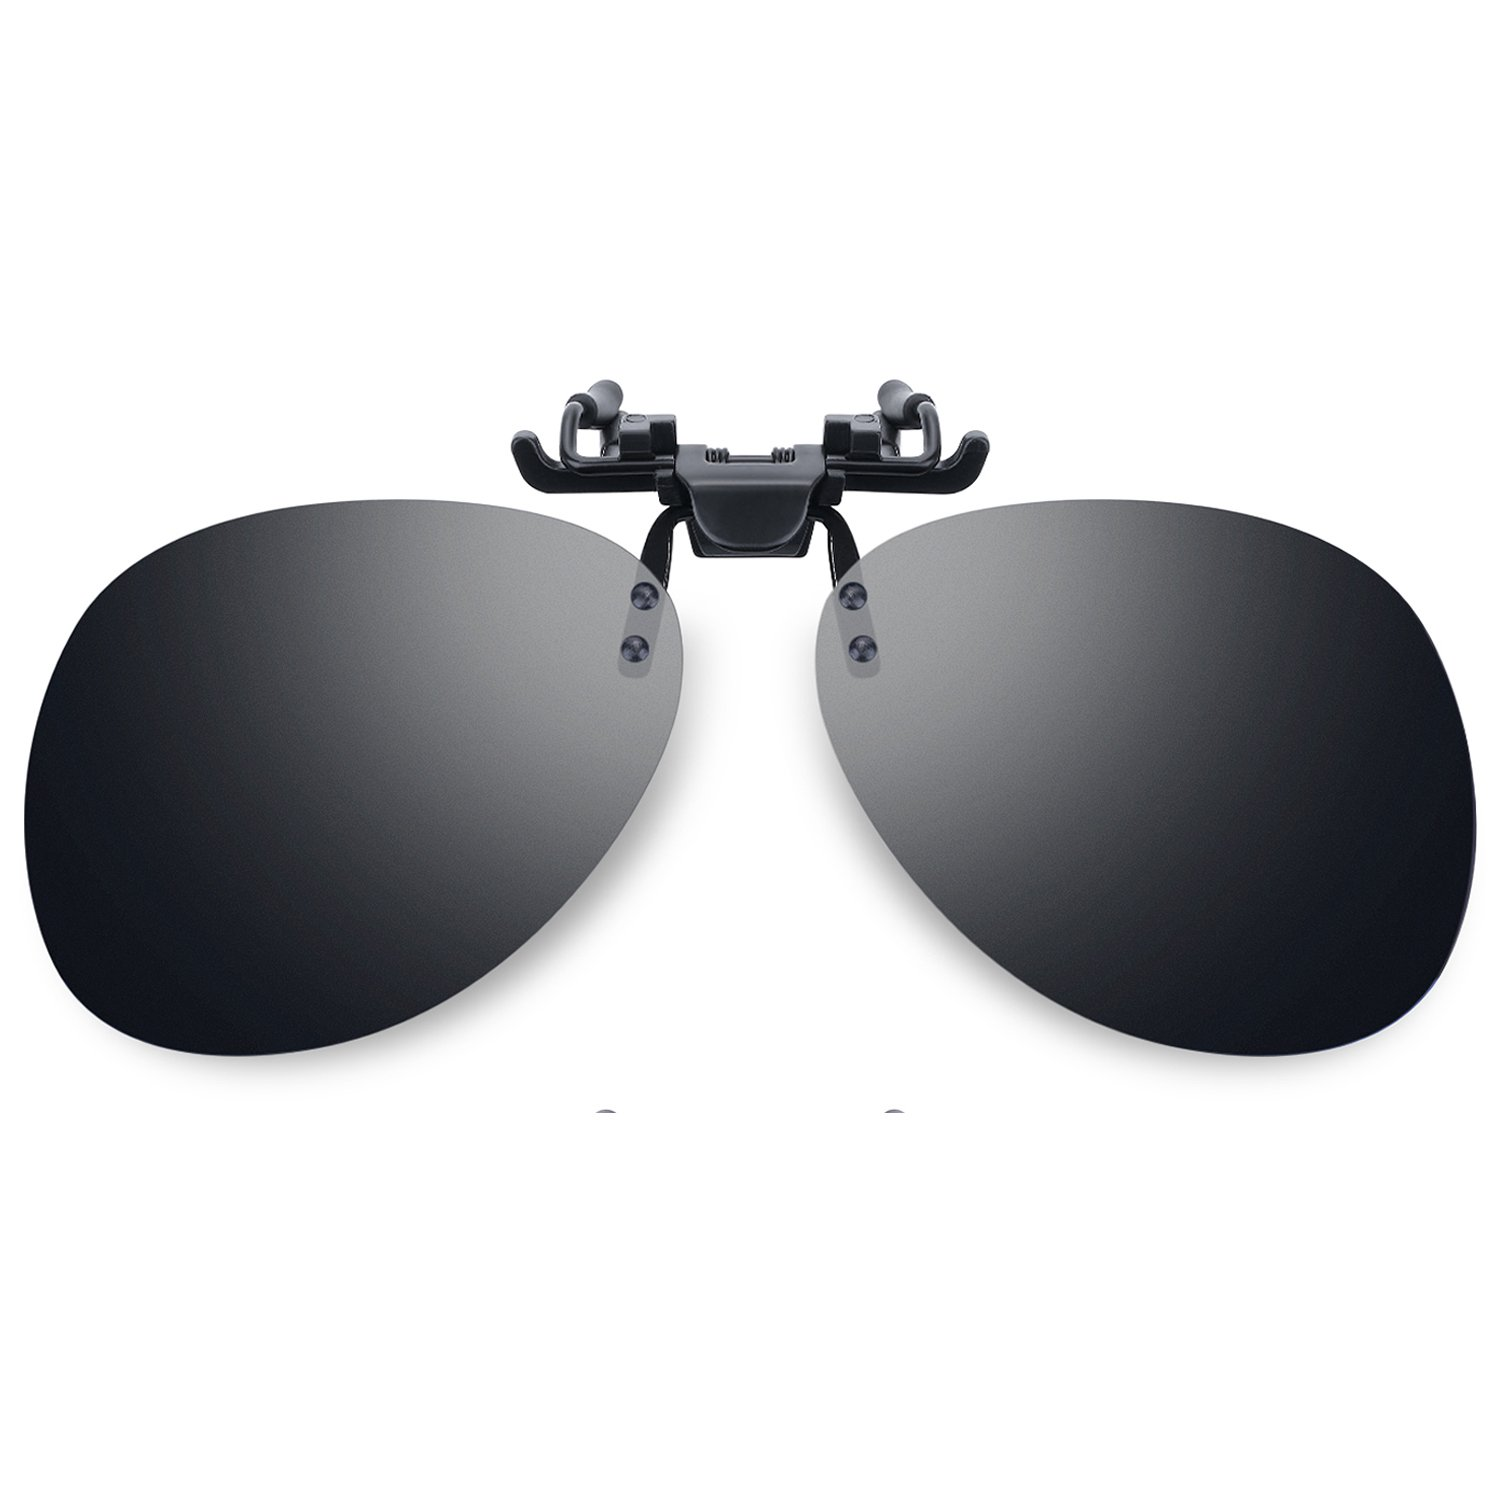 76ea5759be0 Amazon.com  Besgoods Polarized Clip-on Flip up Sunglasses Sports Driving  Outdoors